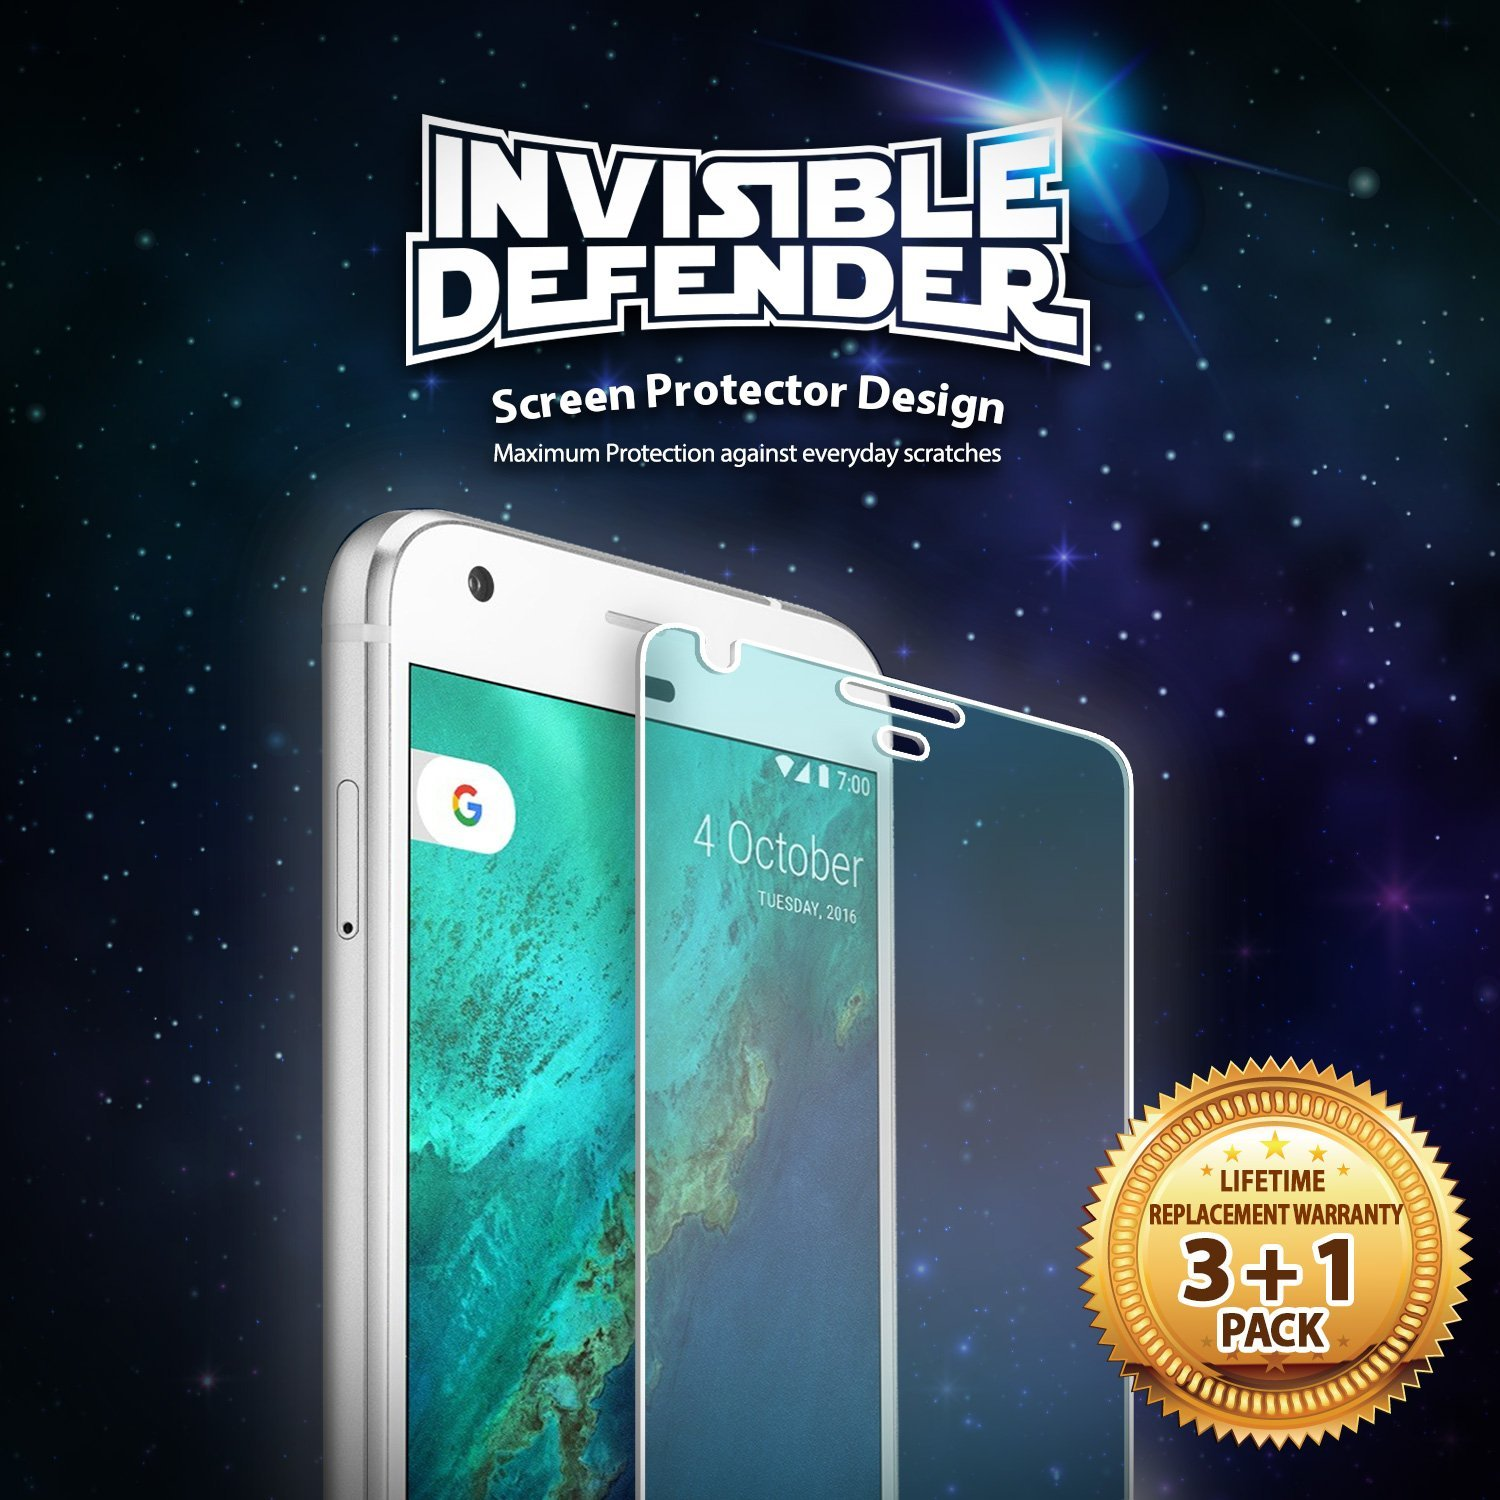 Ringke Screen Protector Invisible Defender Google Pixel XL